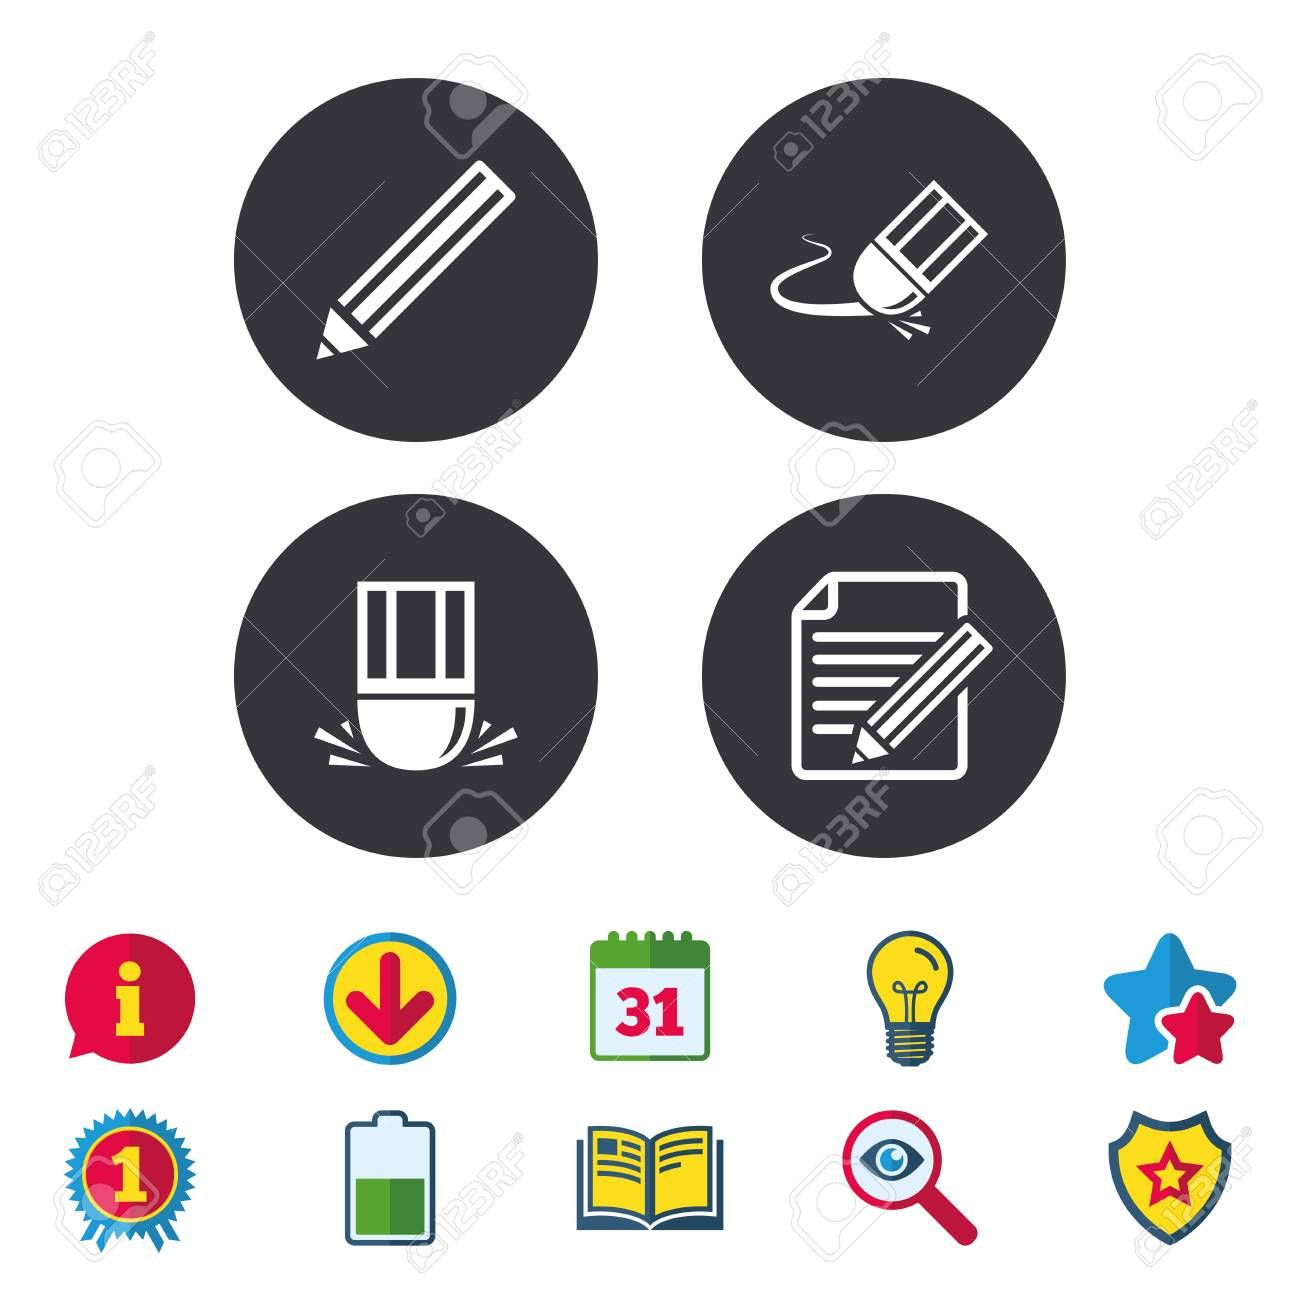 Pencil icon Edit document file Eraser sign Correct drawing symbol Calendar Information and Download signs Stars Award and Book icons Light bulb Shield and Search Vector